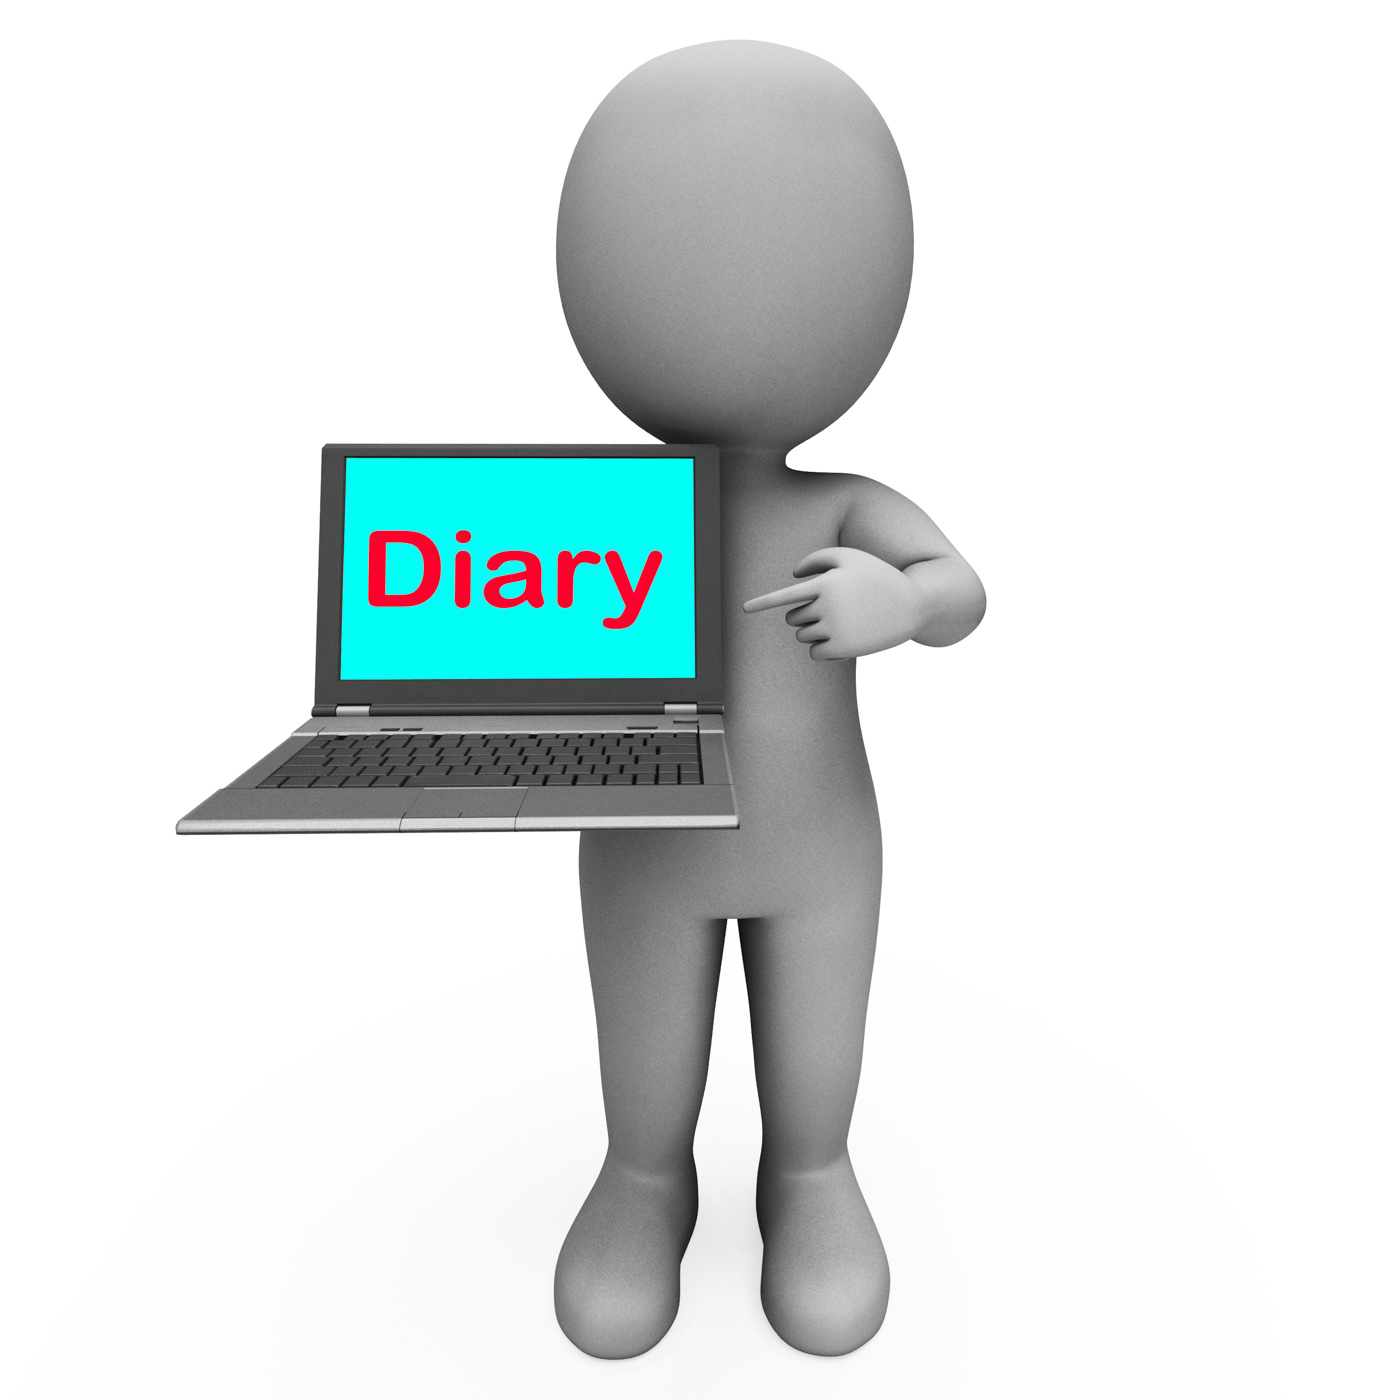 Diary laptop character shows online reminder or scheduler photo